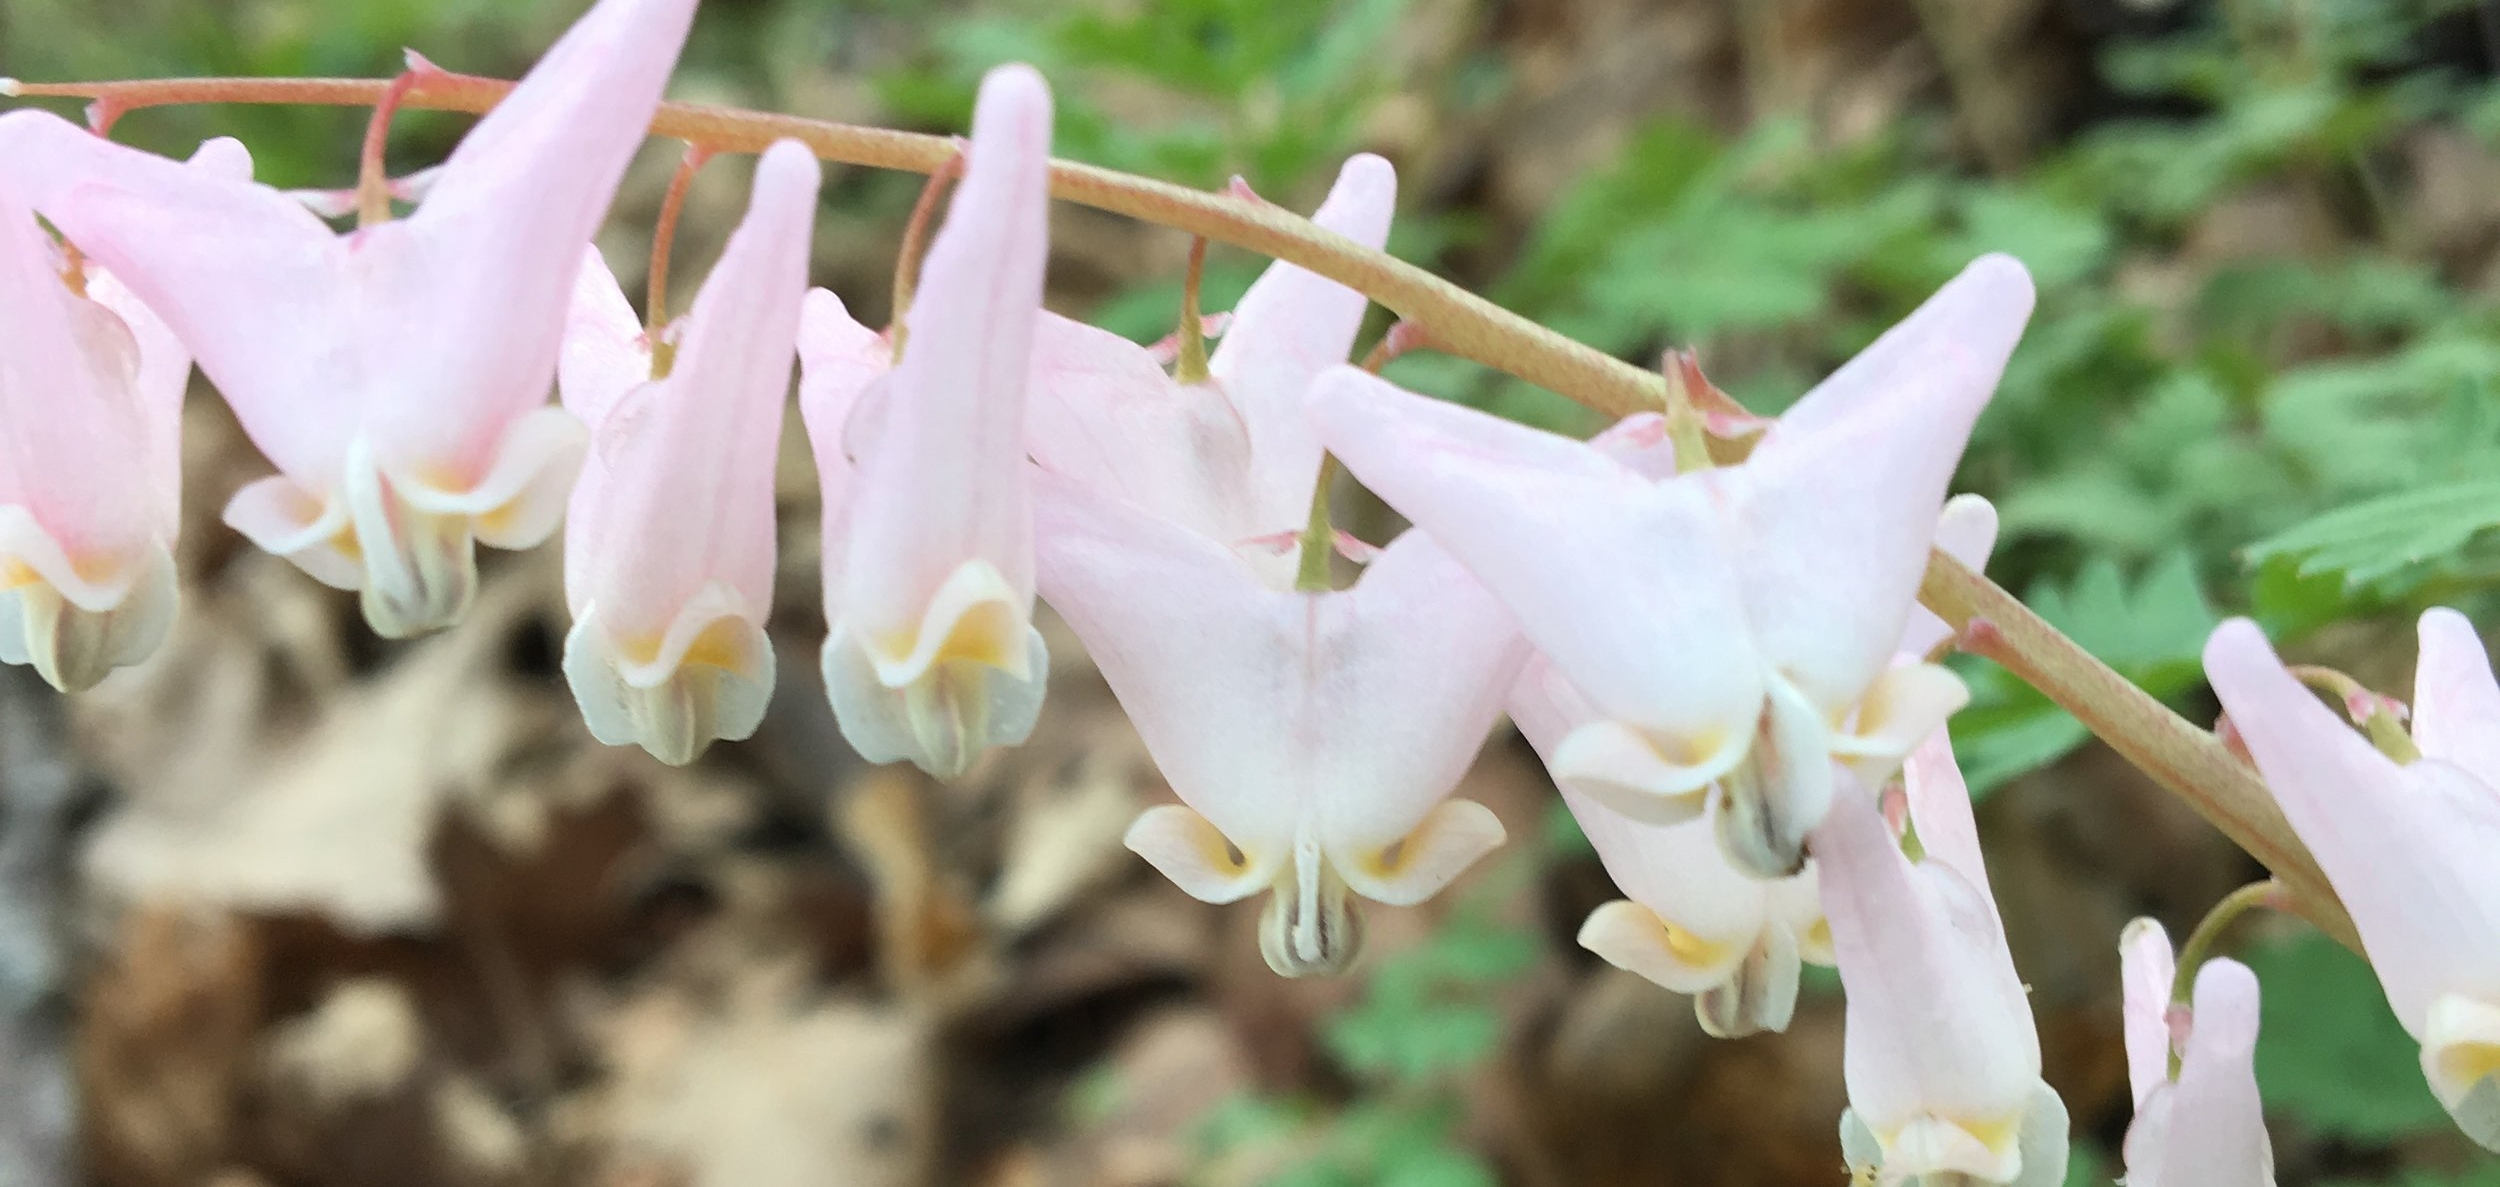 Dutchman's Breeches, a favorite wildflower, was in bloom along the bike path. (I think Dutch Bloomers would be a better name...)